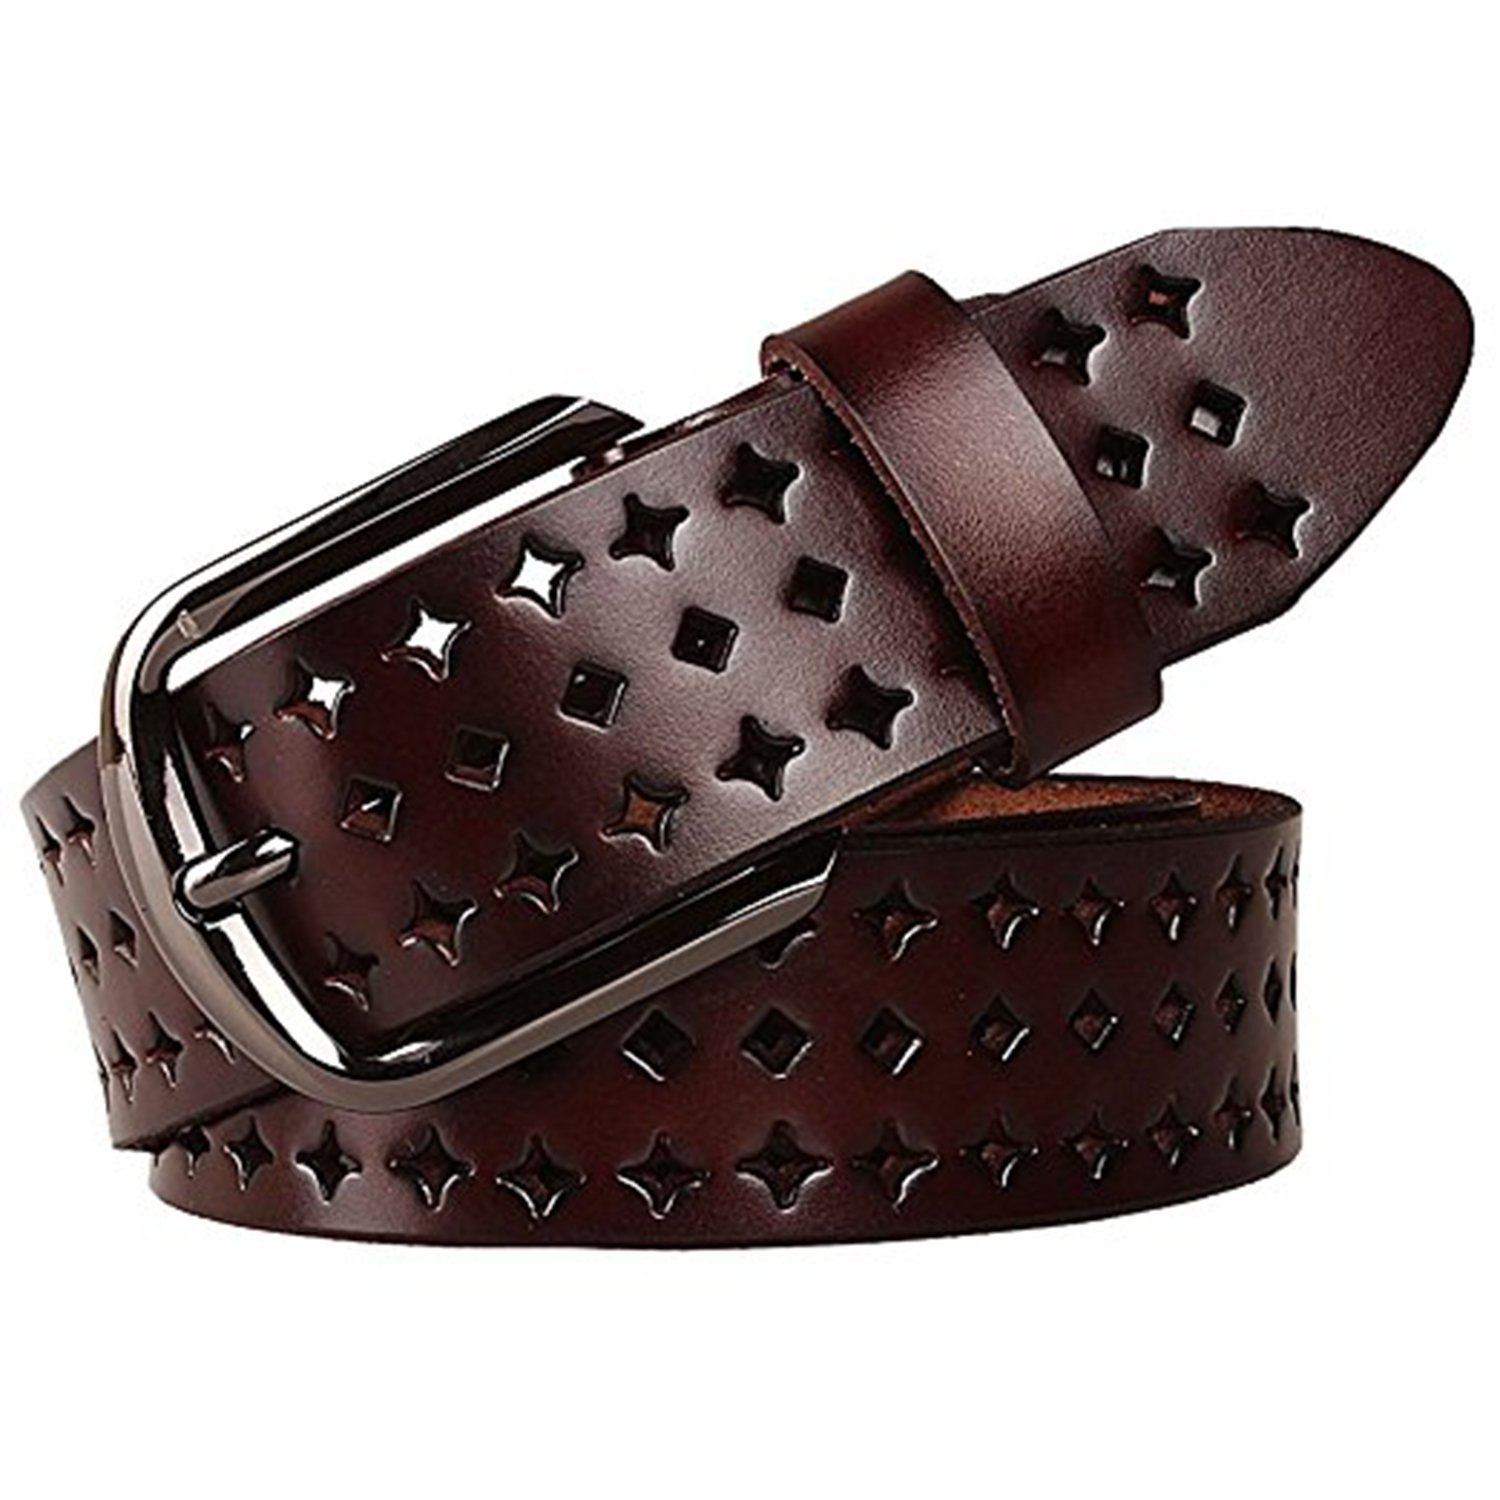 JasGood Fashion Genuine Leather Belt For Women Dress Belt Unique Style(E-Dark Brown),E-dark Brown,One Size